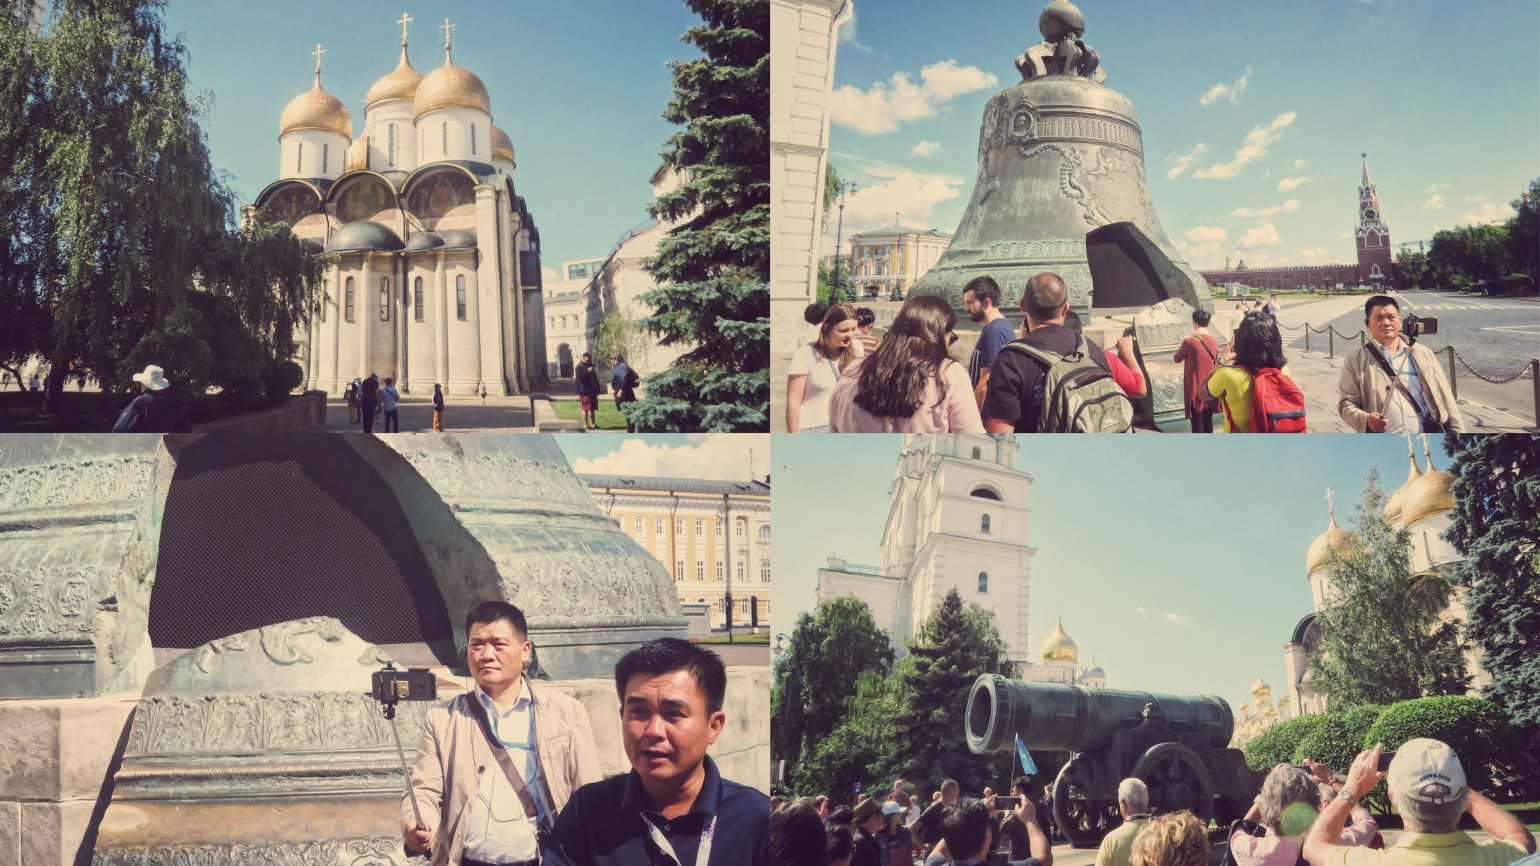 Moscow_photojournal44